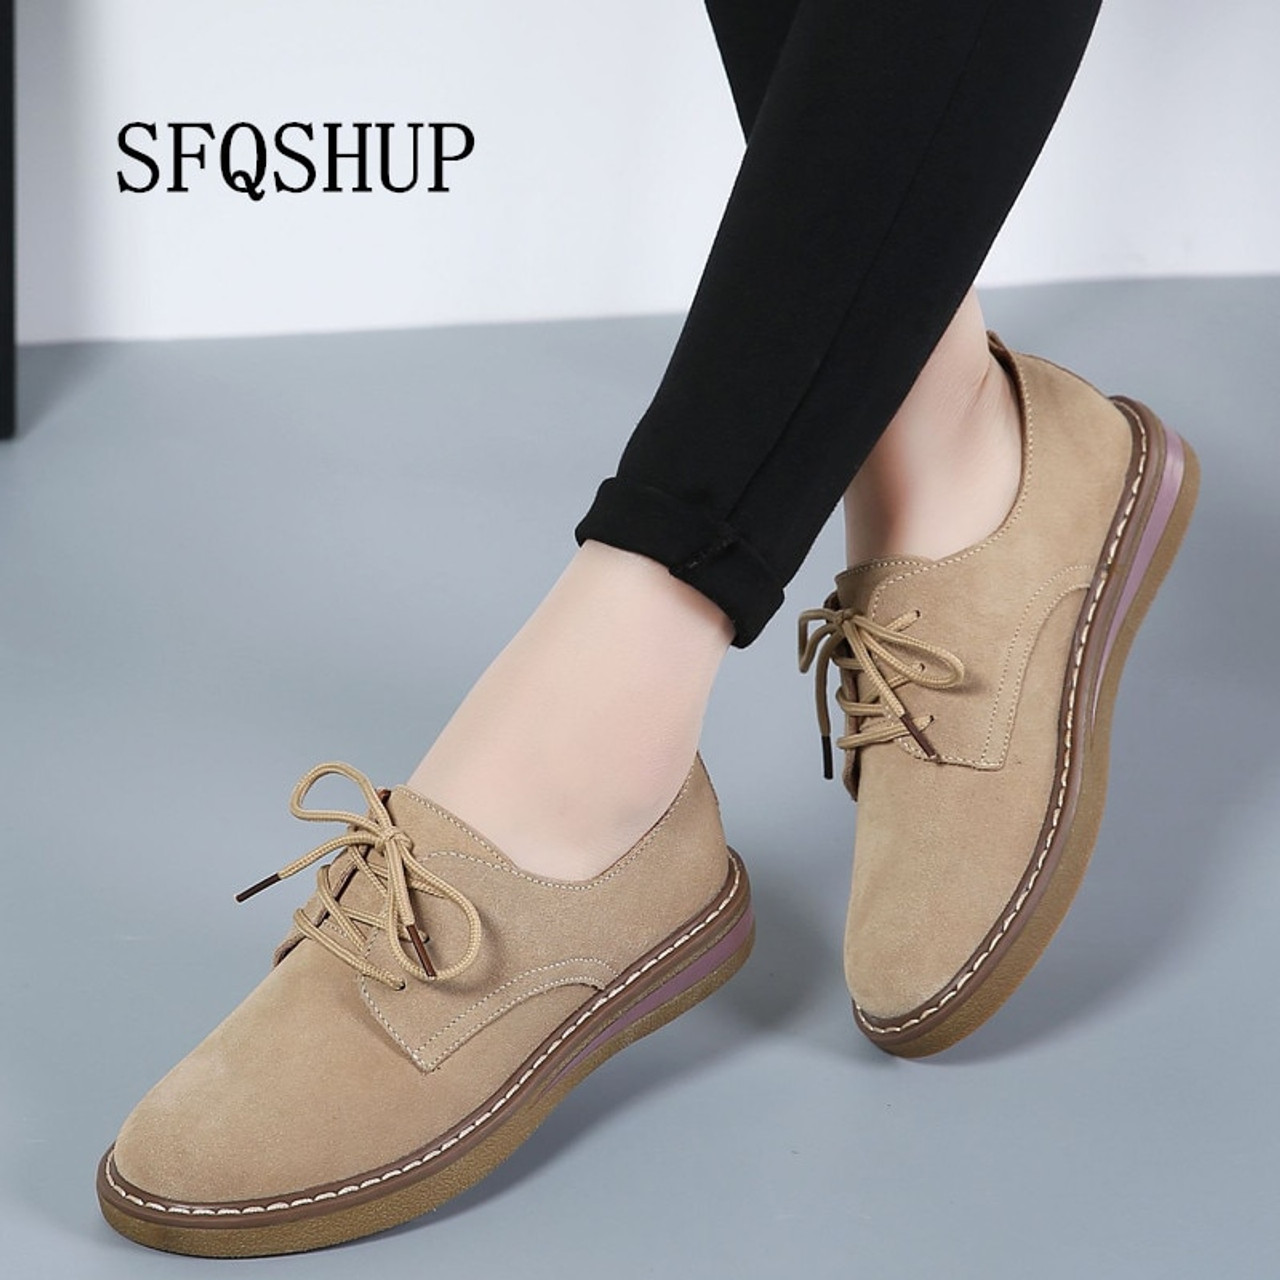 SFQSHUP Women's Shoes Genuine Leather Oxford Mother Girls Lace Up Fashion  Casual Shoes Women Sneakers Flats Moccasins Shoes - OnshopDeals.Com